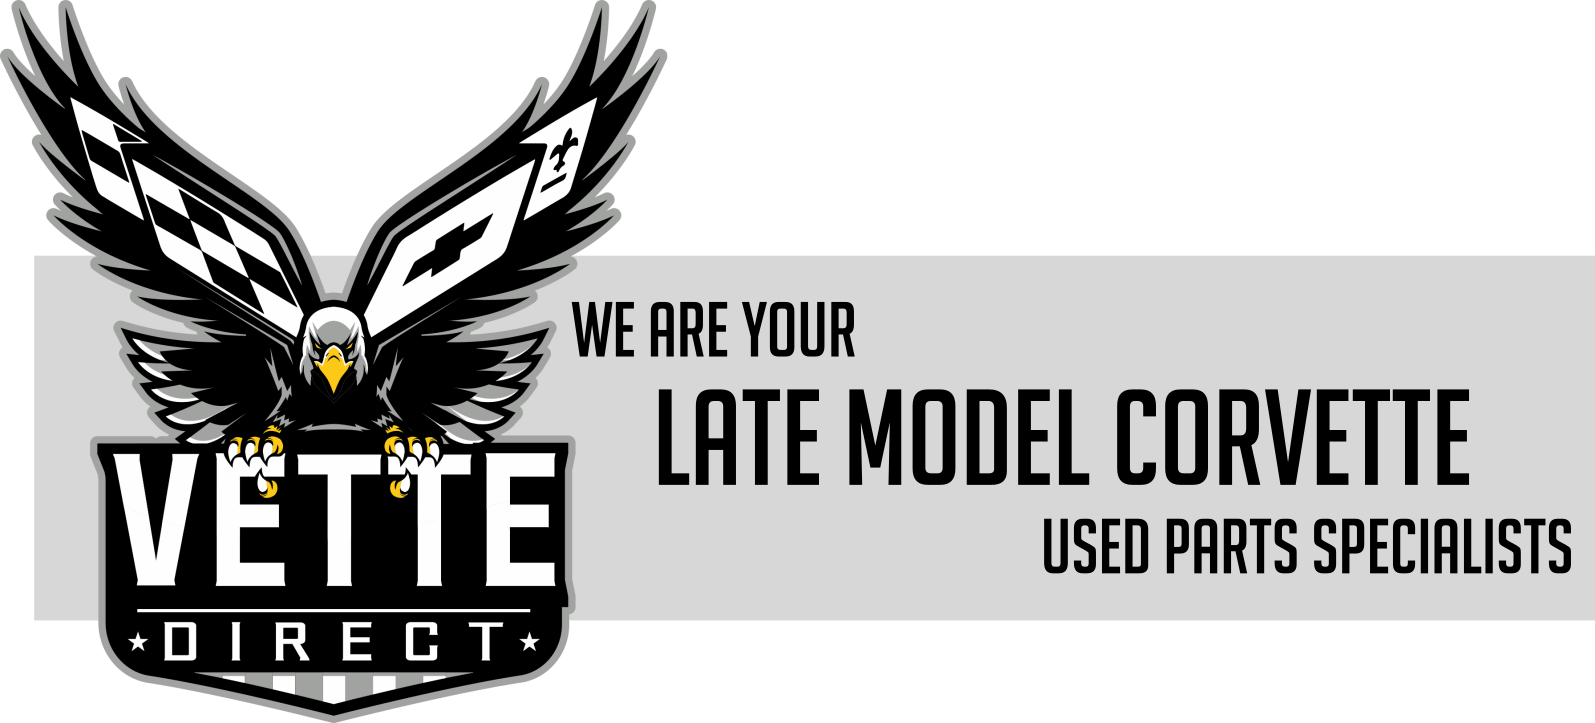 Vette Dire We are YOUR Late Model Corvette Used Parts Specialists